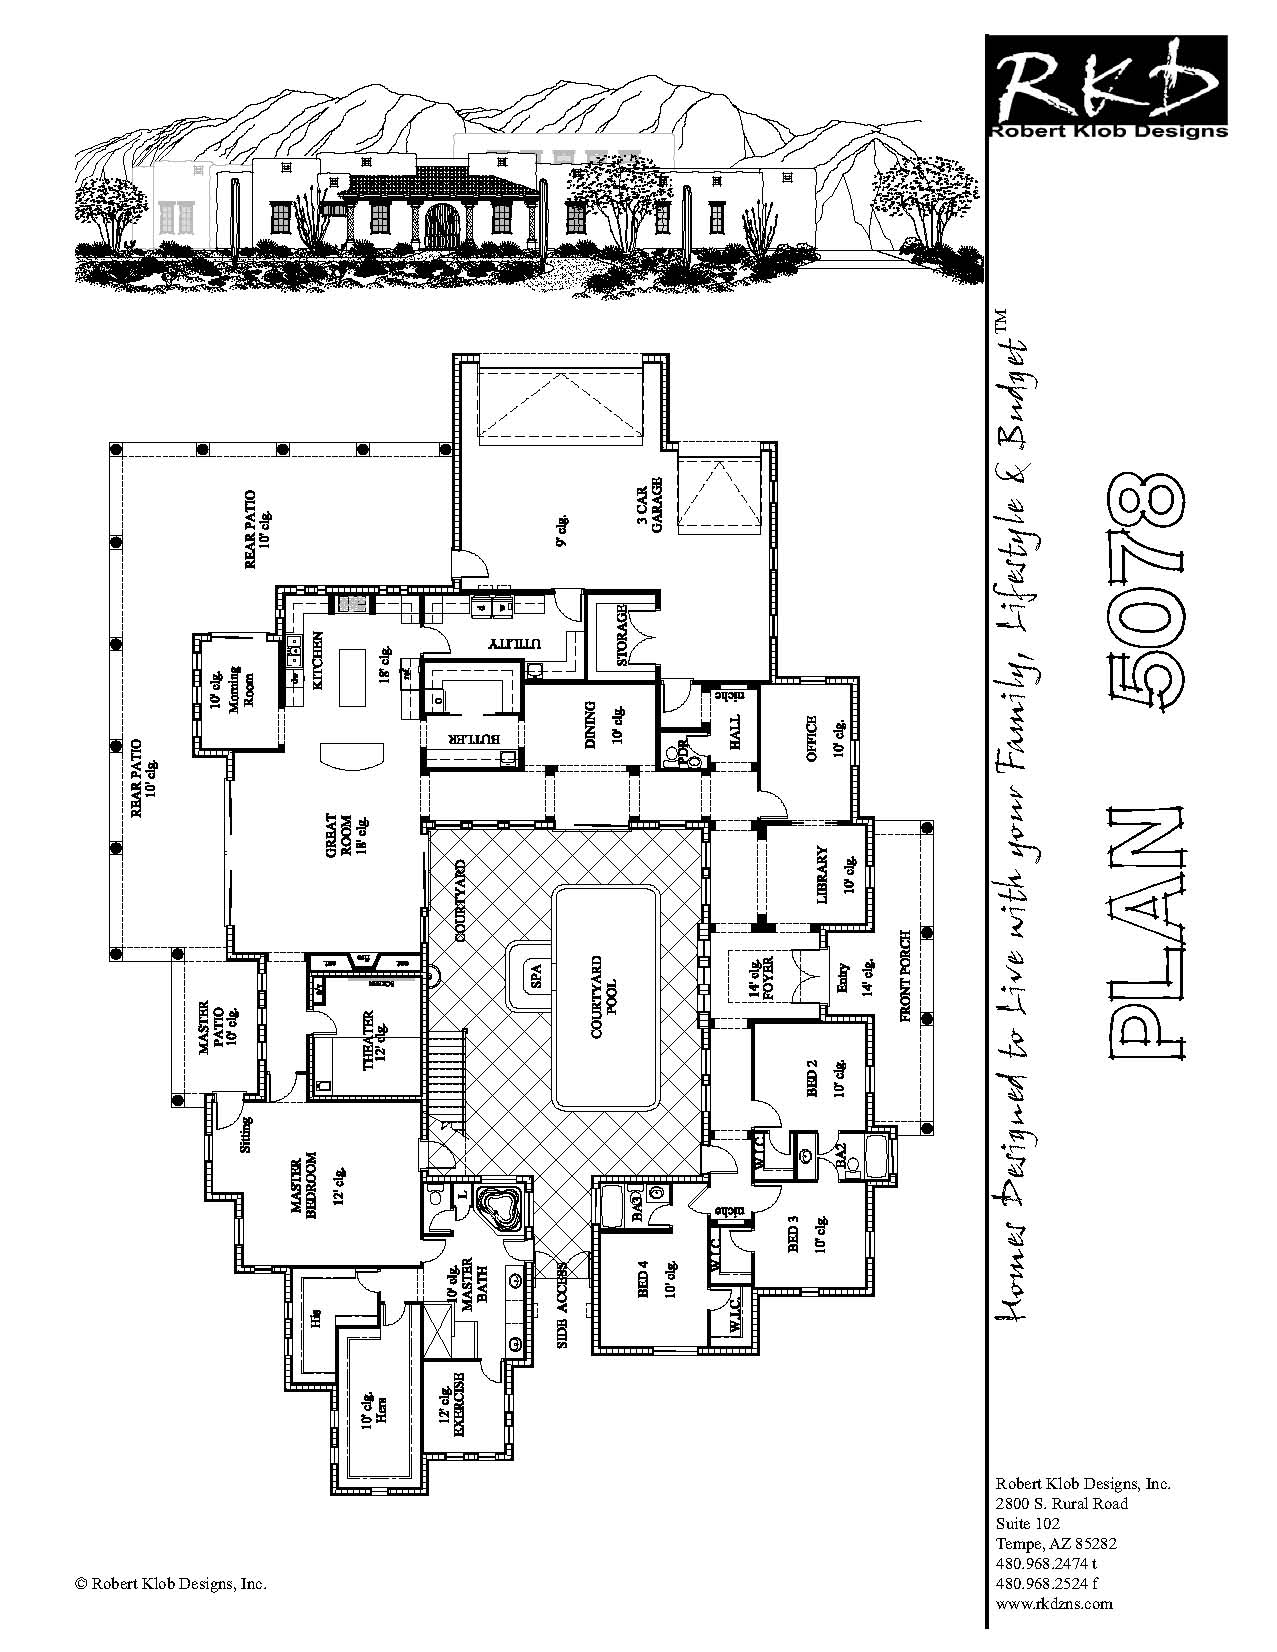 Non-Hectic ICF Home Plans Supporting Your Modern Lifestyle With No Faults: Fabulous Modern Style ICF Home Plans Architecture Floor Design ~ dickoatts.com Interior Designs Inspiration